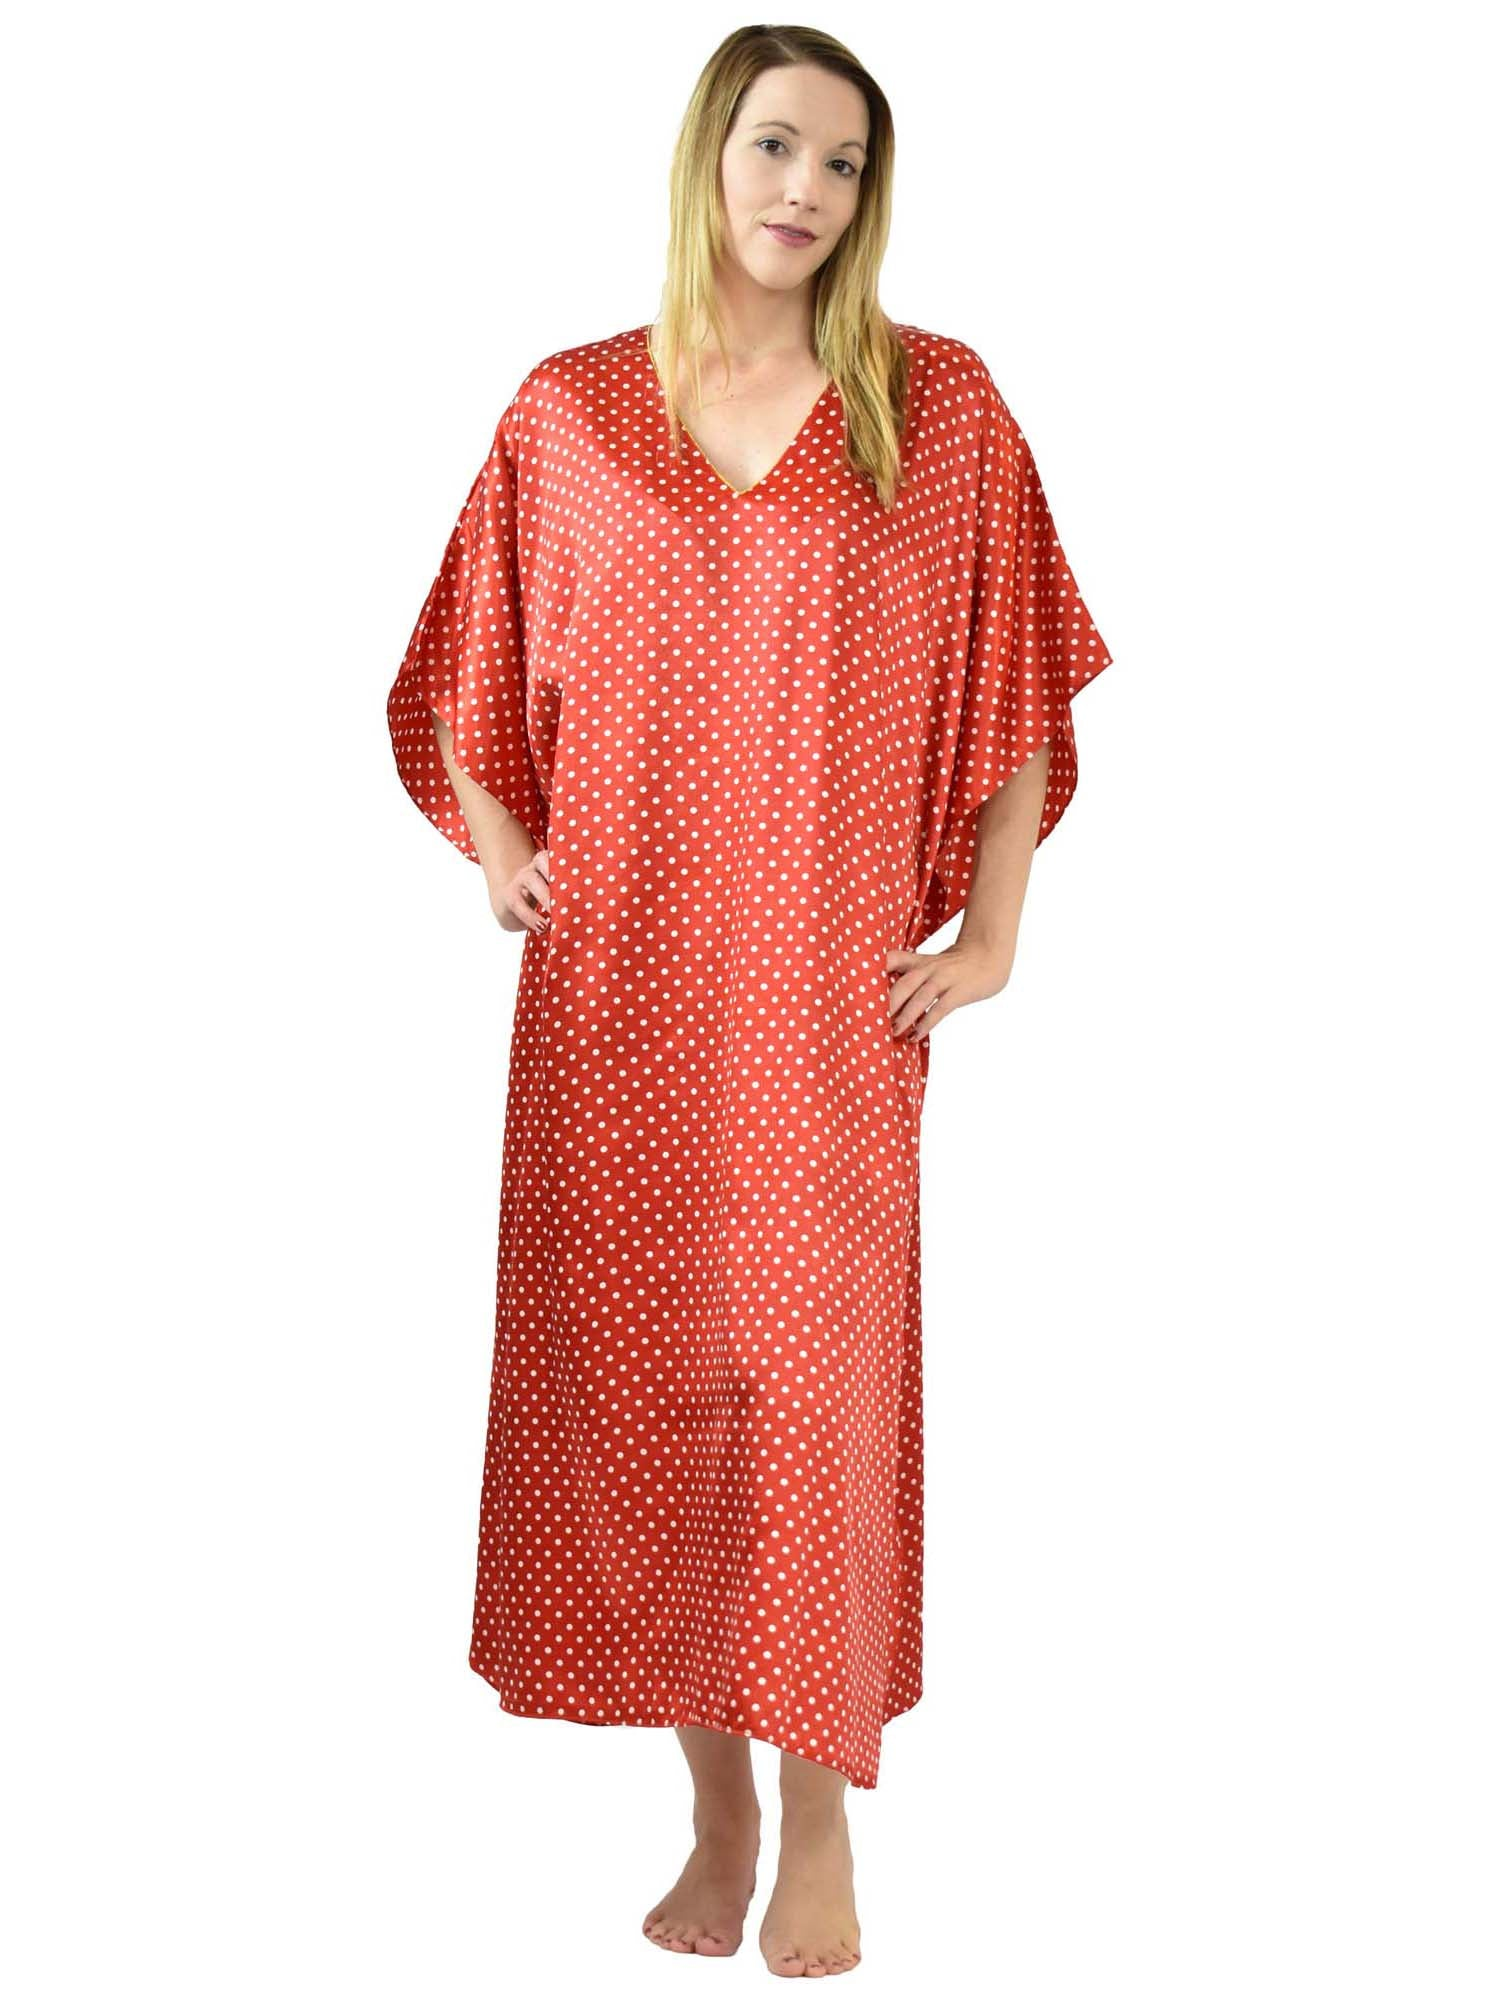 Women's Long Satin Caftan / Kaftan / Muumuu, Red with Polka Dots Print